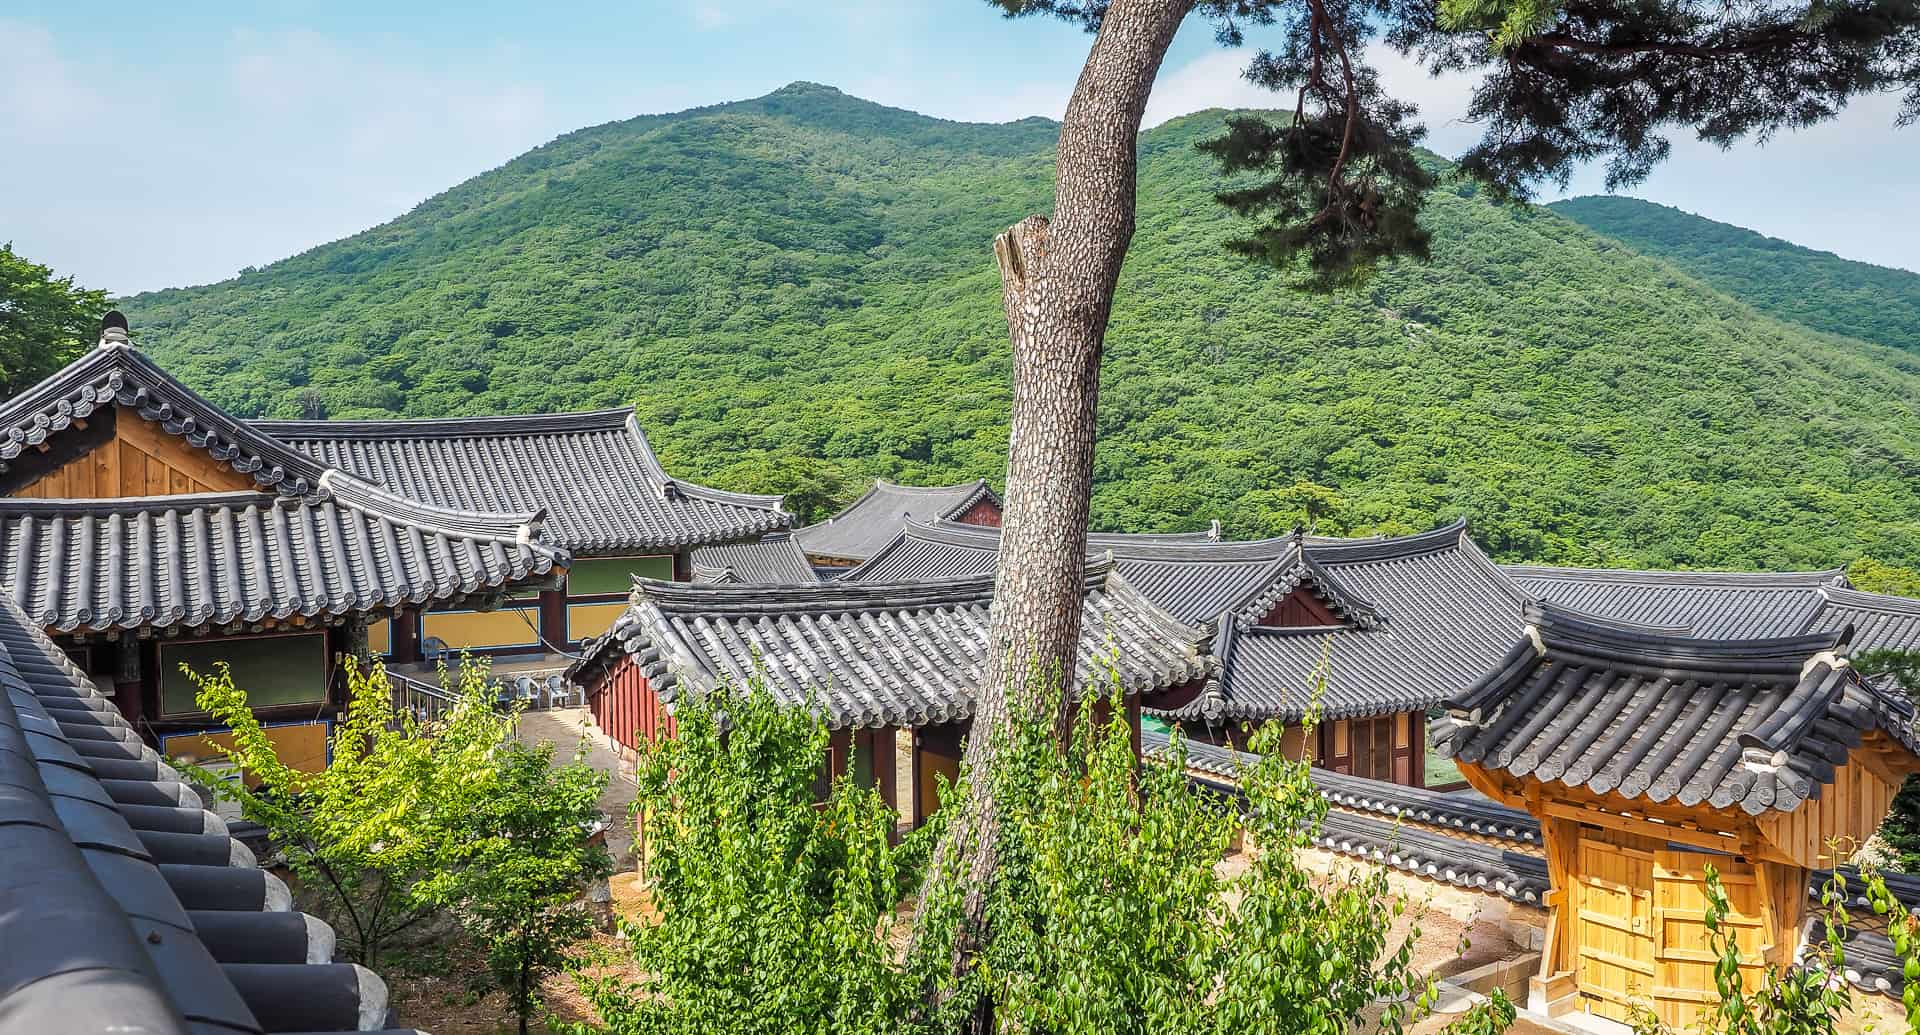 Doing a Busan temple stay at Beomeosa Temple